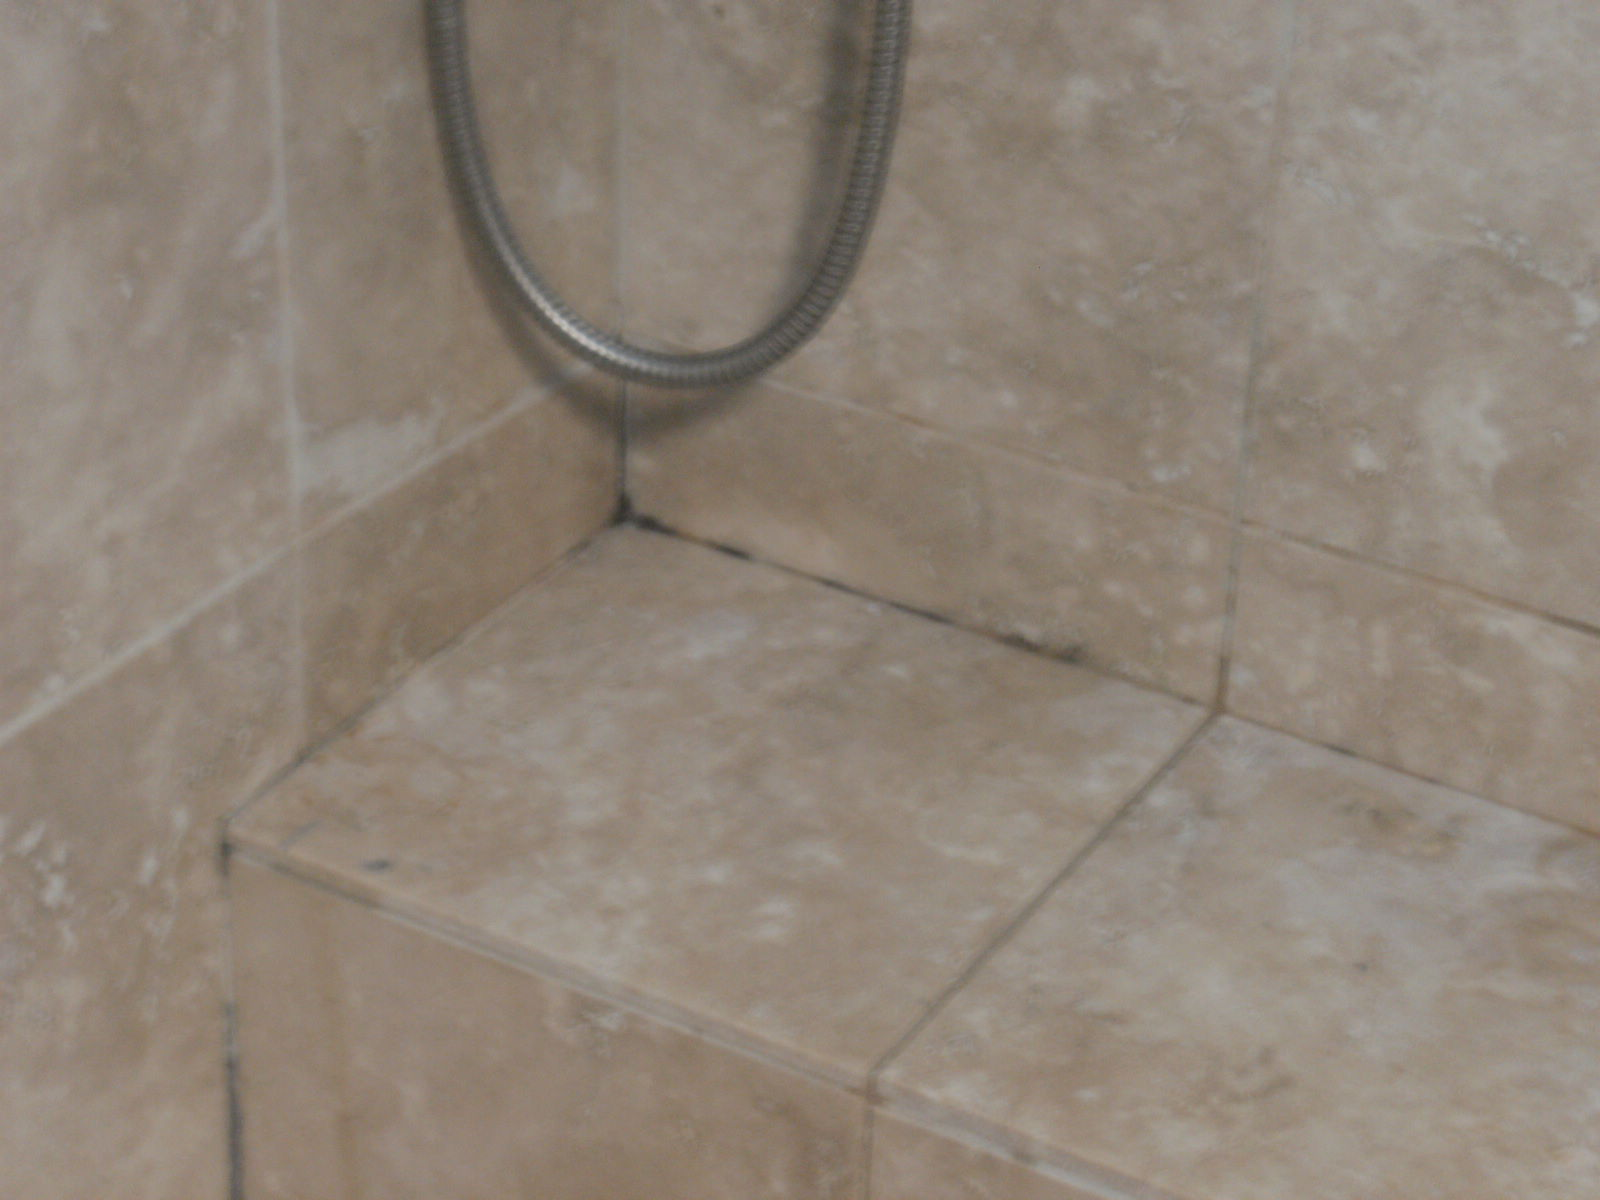 Black Mold Strachybotrys Atra And Travertine Tile Confessions Of - Best way to get rid of mold in shower grout